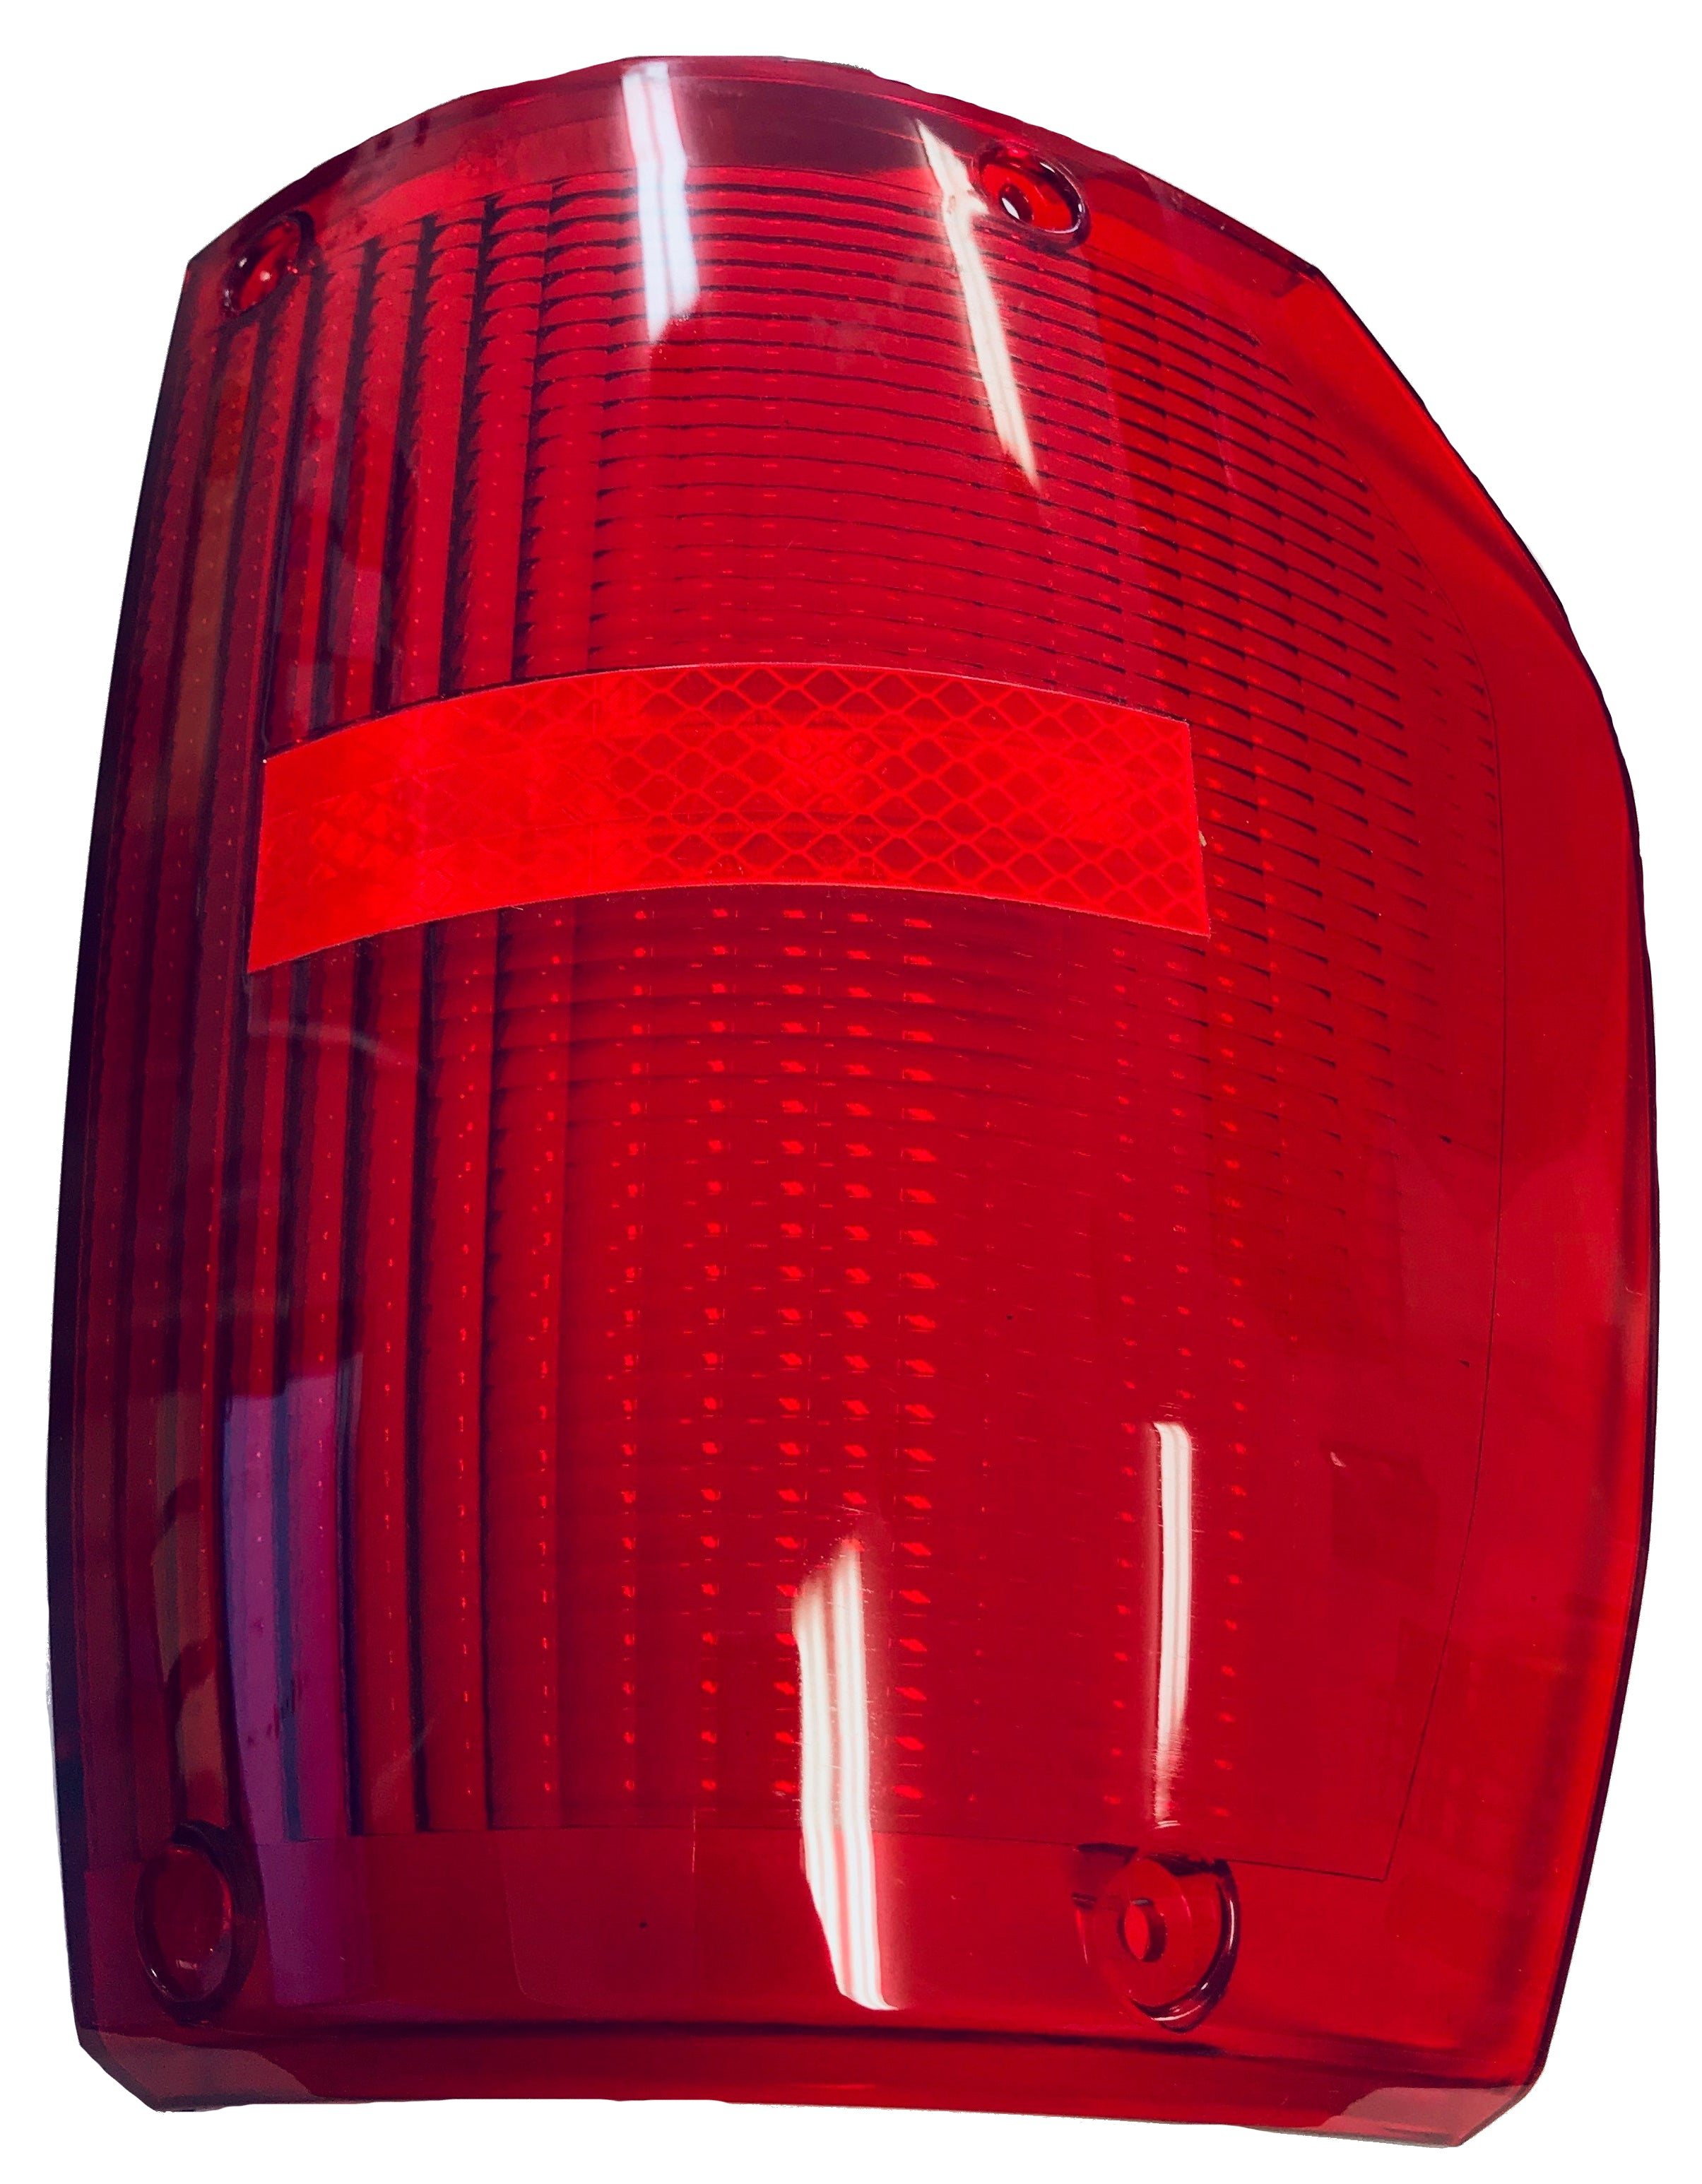 John Deere Original Equipment Left Hand Tail Lamp - AM134199,1